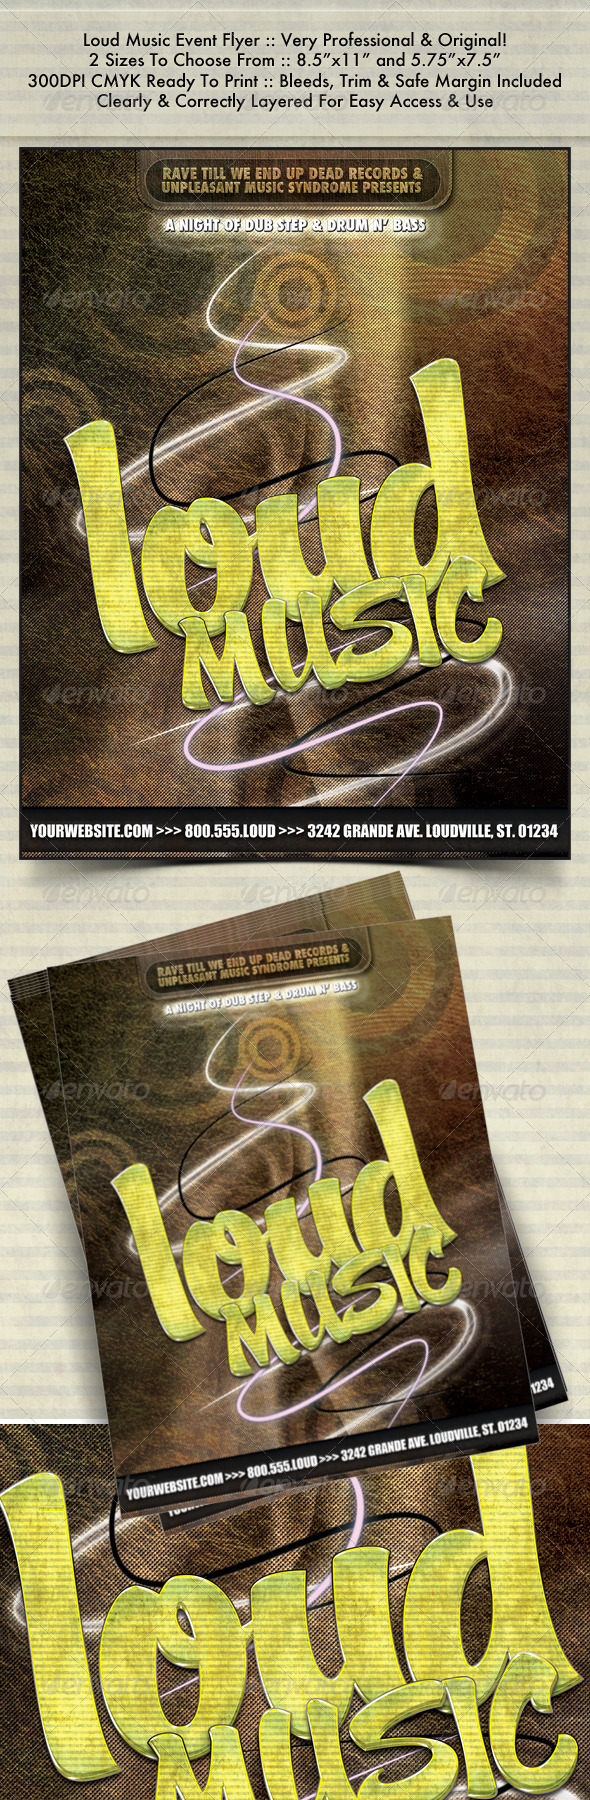 Graphic River Loud Music Night Club Flyer Print Templates -  Flyers  Events  Clubs & Parties 489972